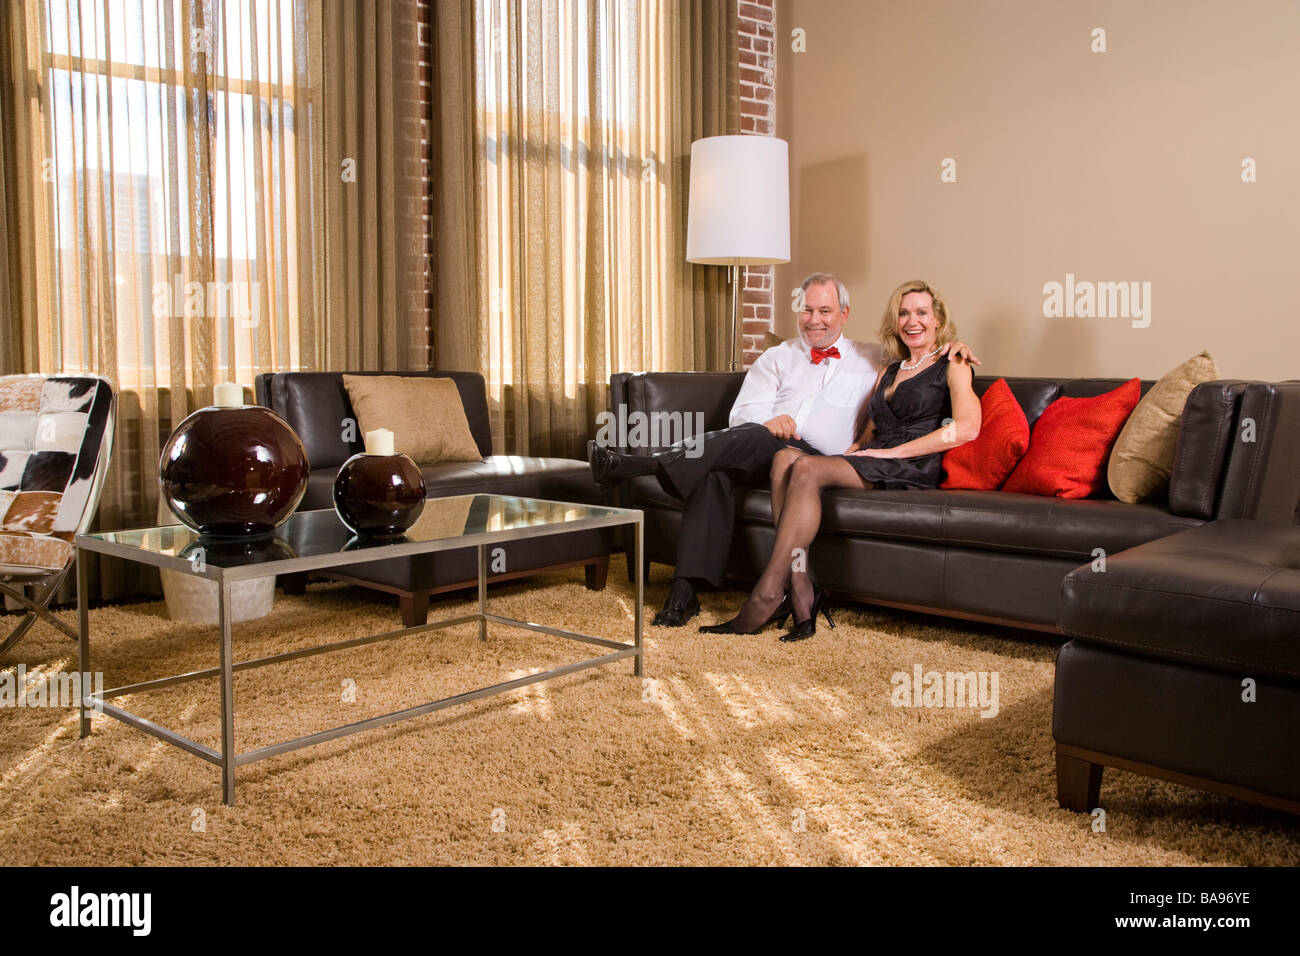 Middle-aged couple sitting on couch in living room - Stock Image